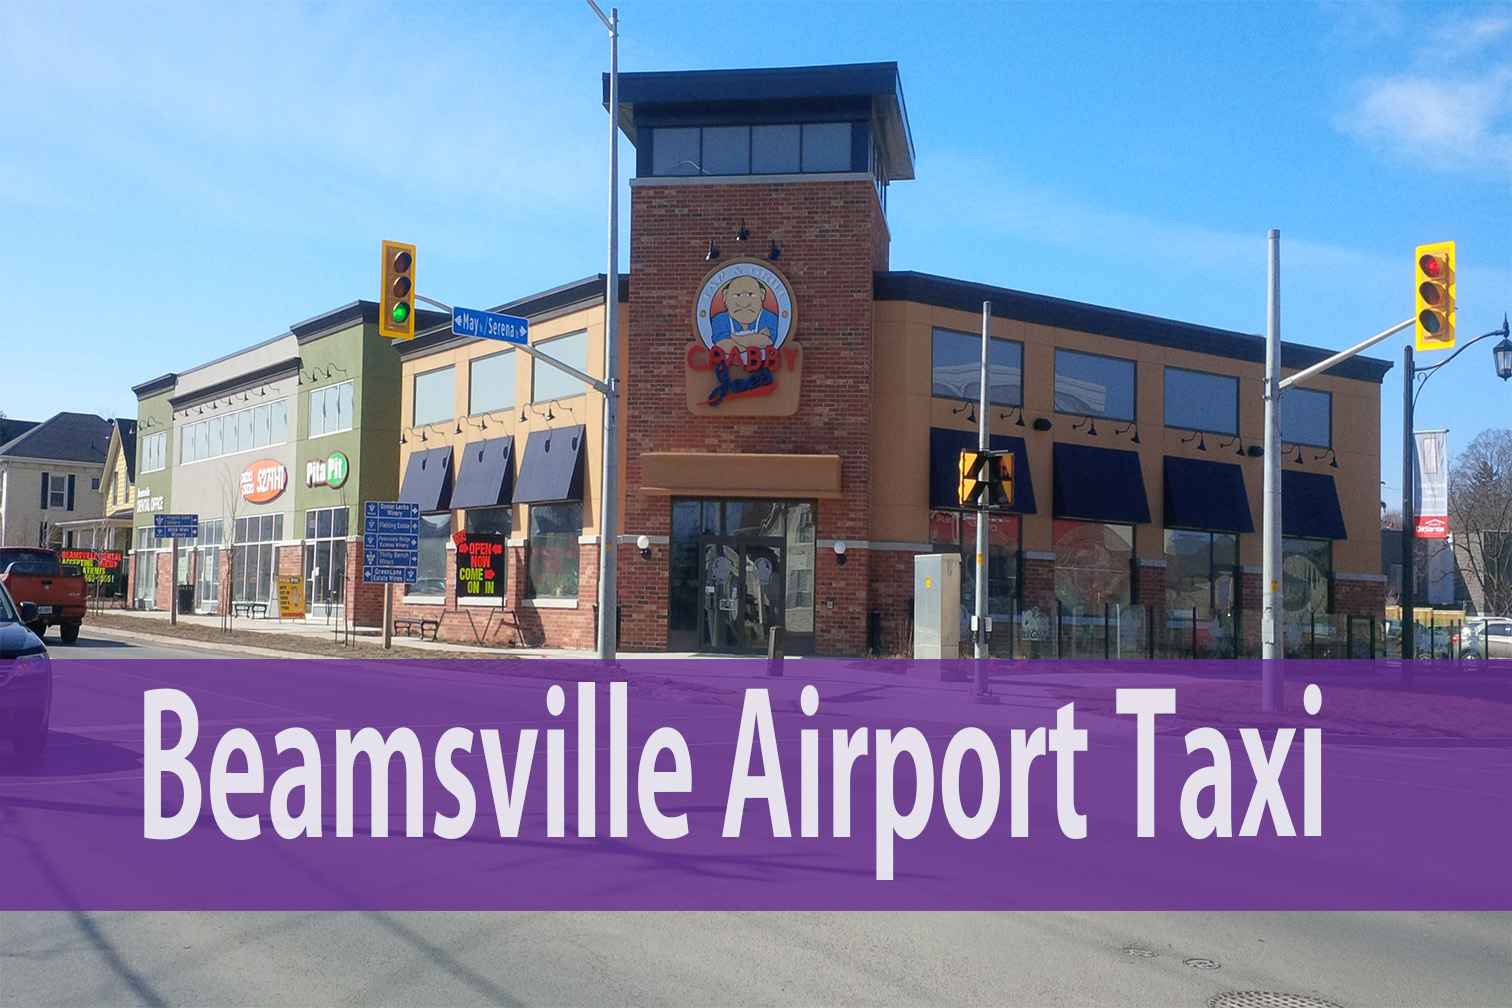 Beamsville Airport Taxi